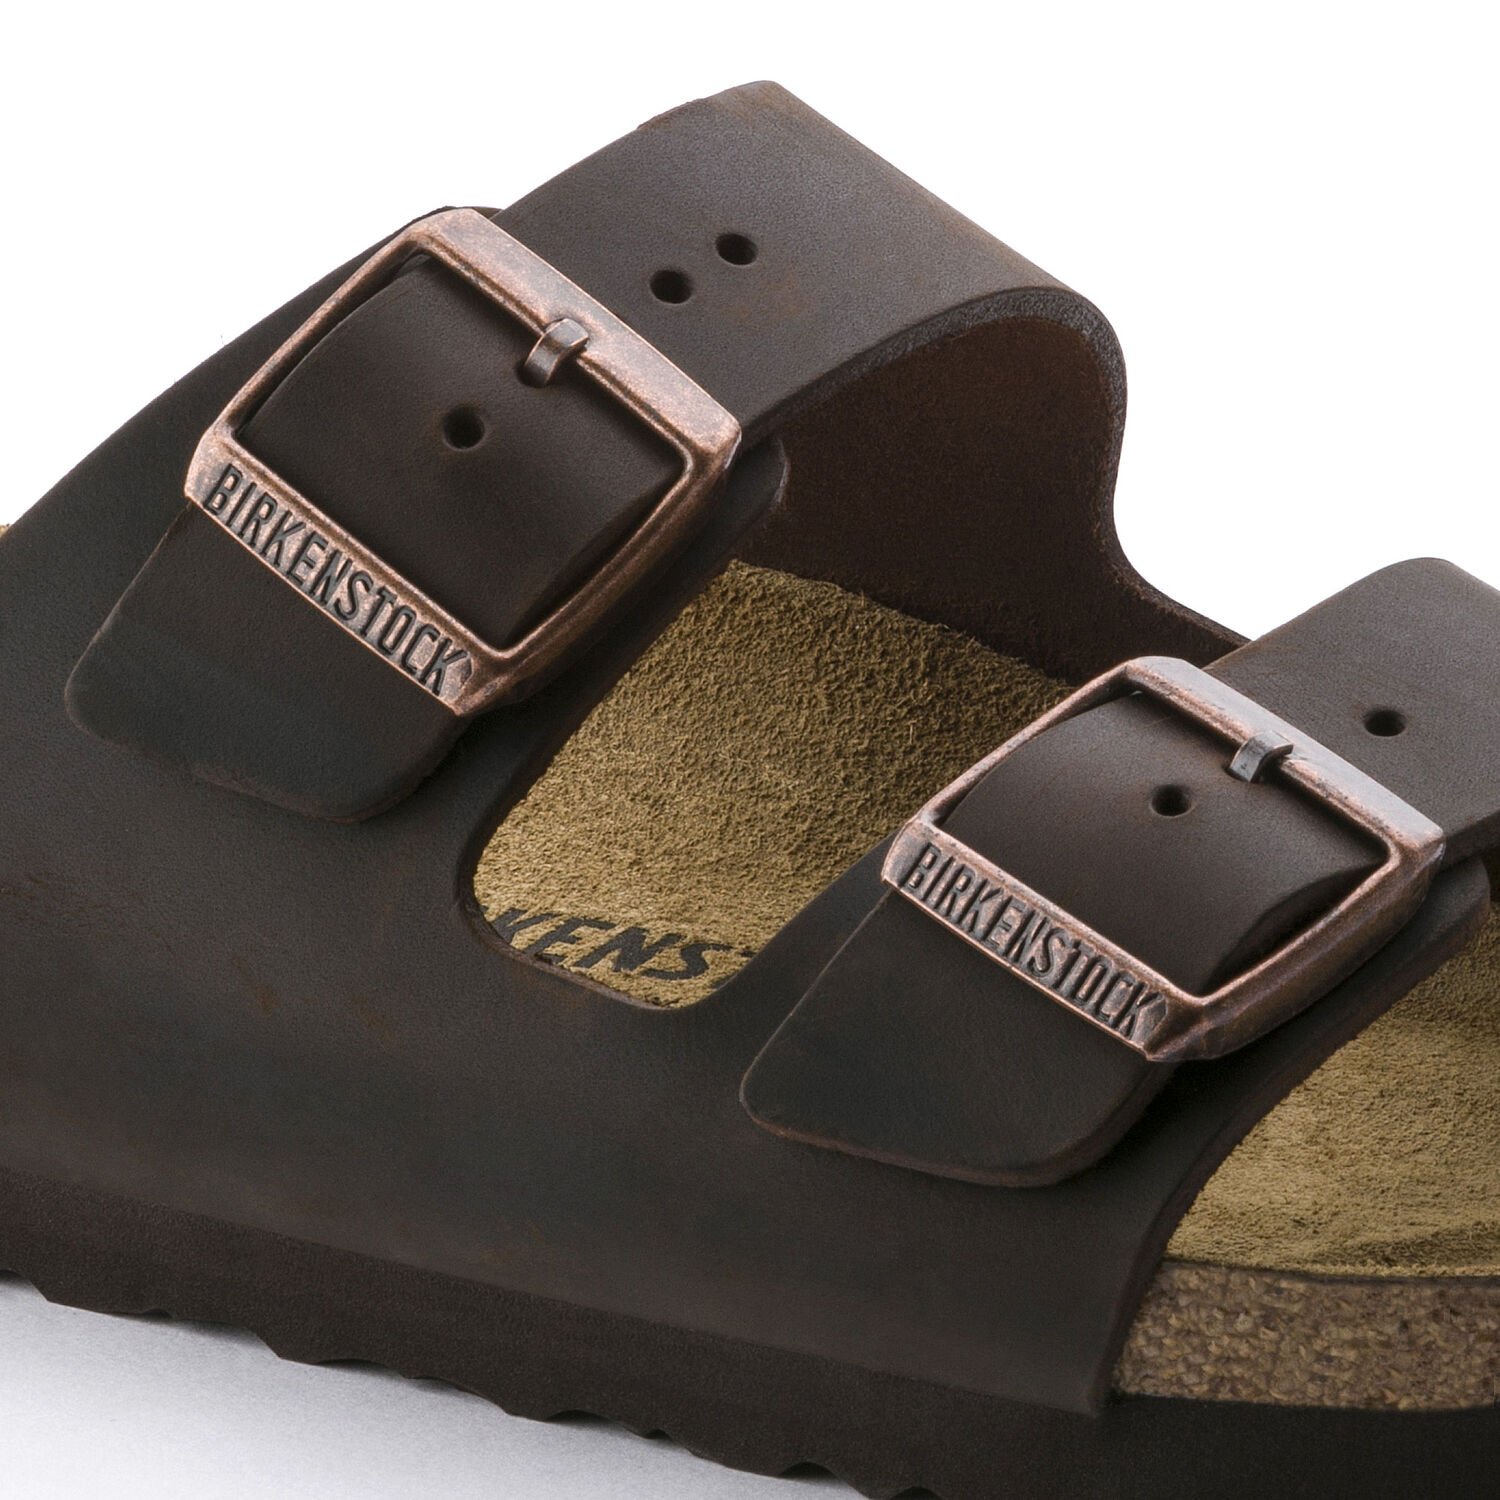 мъжки чехли Биркенщок / BIRKENSTOCK Arizona Oiled Leather Habana детайл катарами